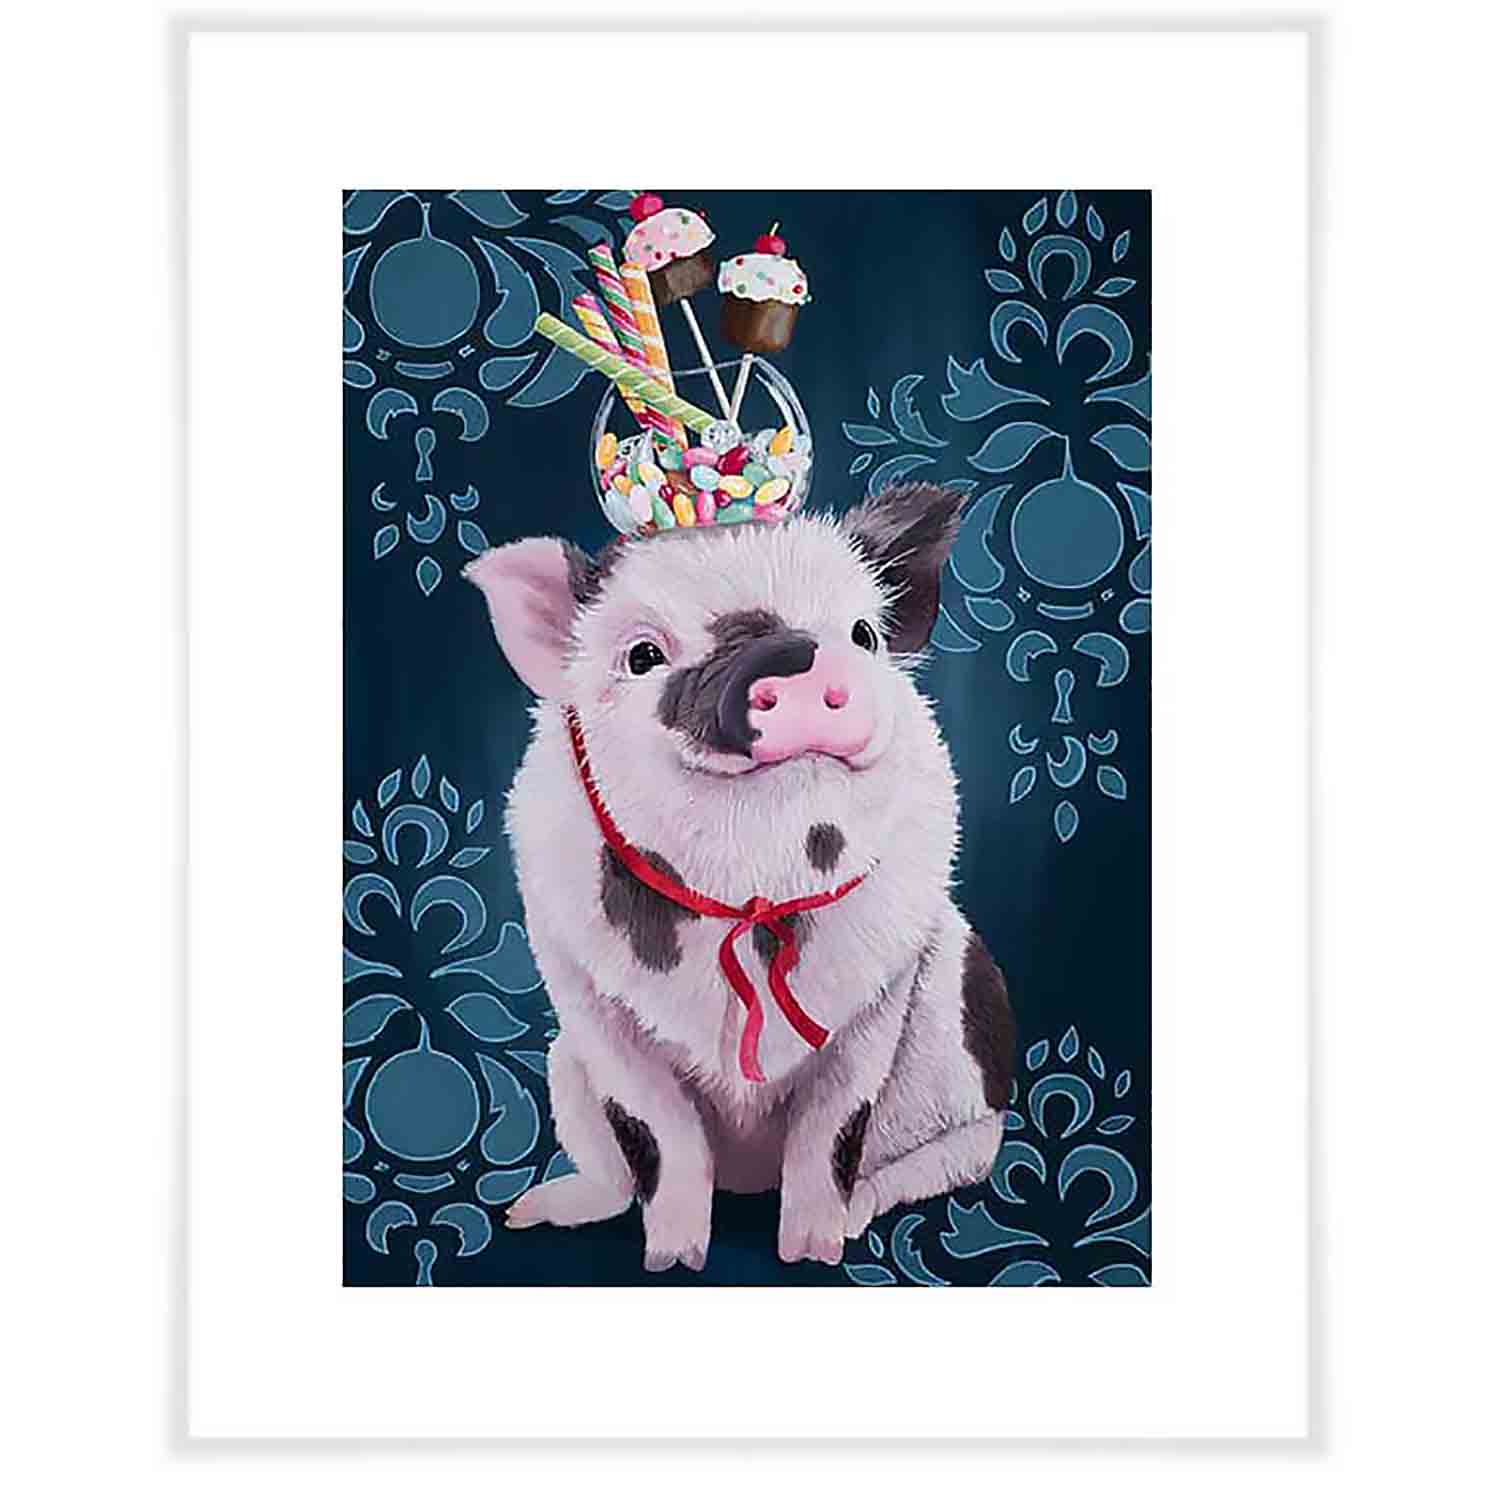 William Has A Sweet Tooth Art Print - Blue